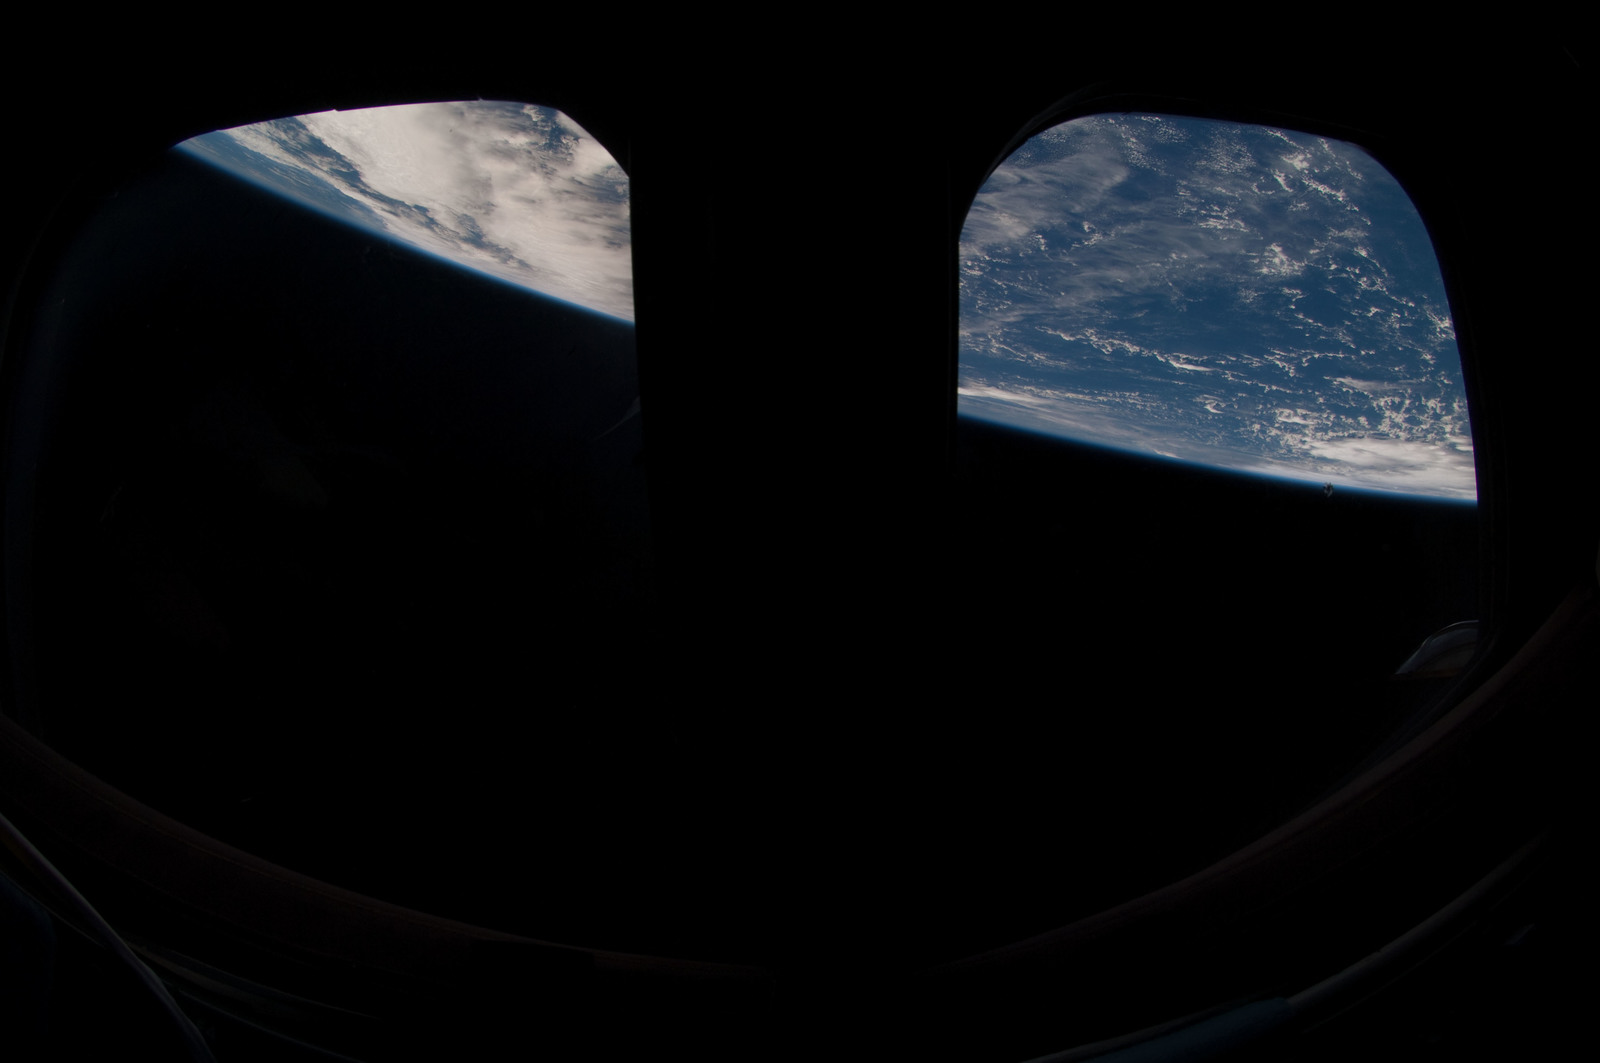 S126E026169 - STS-126 - Earth Observations taken by STS-126 Crewmember